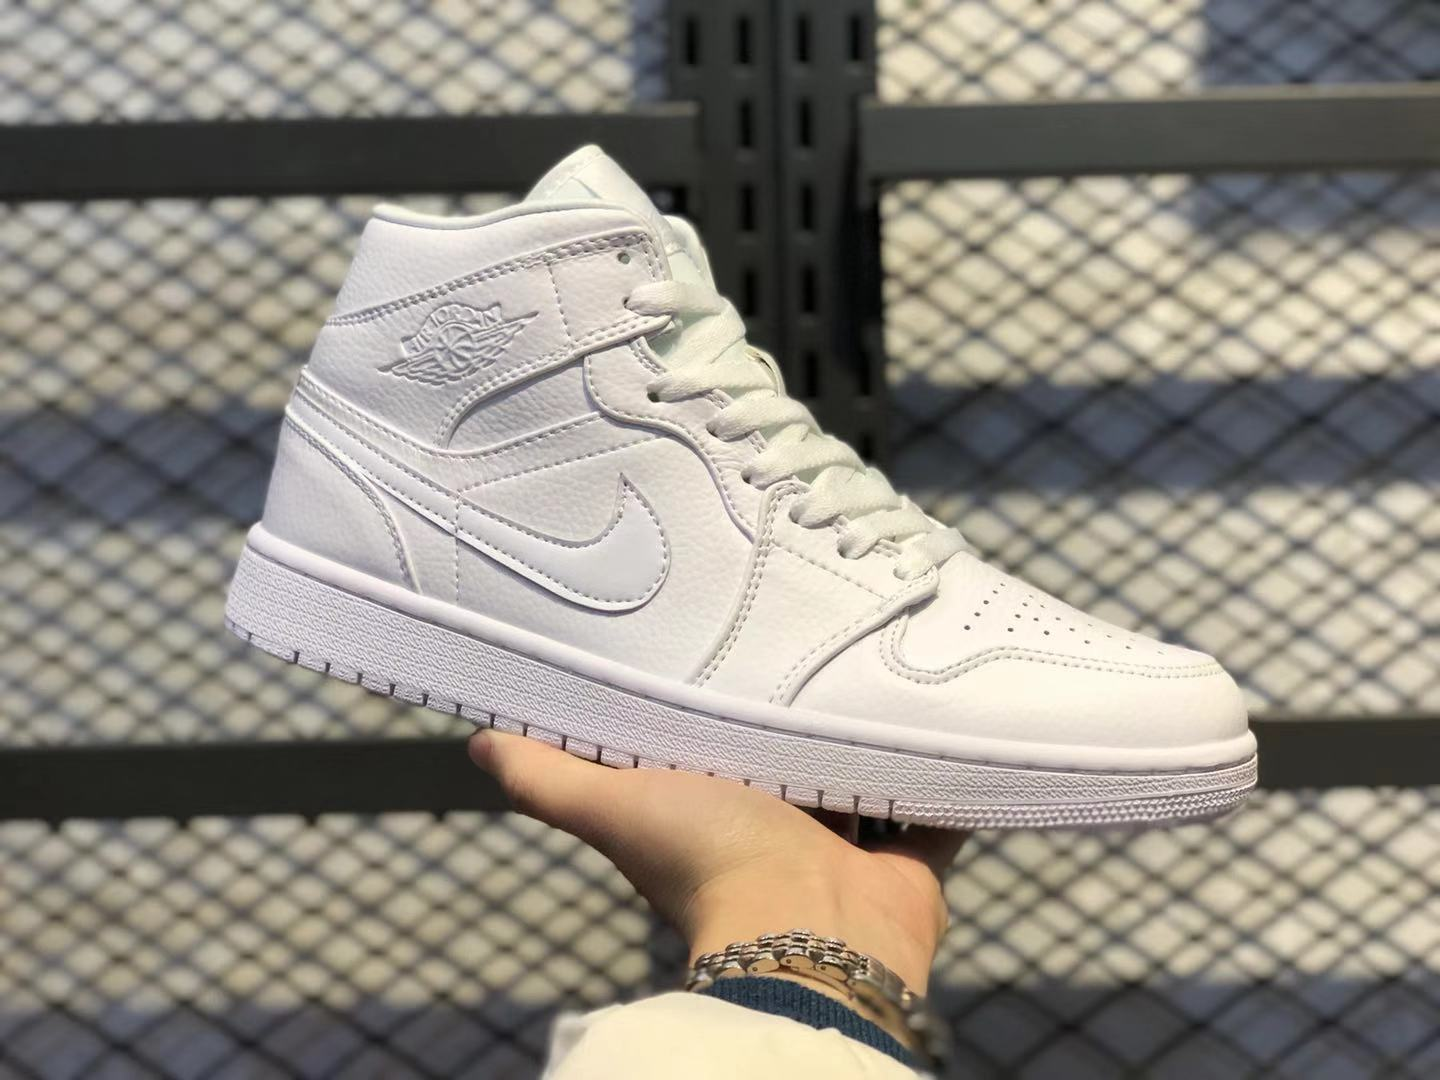 Air Jordan 1 Mid GS White Pure Platinum Basketball Shoes In Stock 554725-109